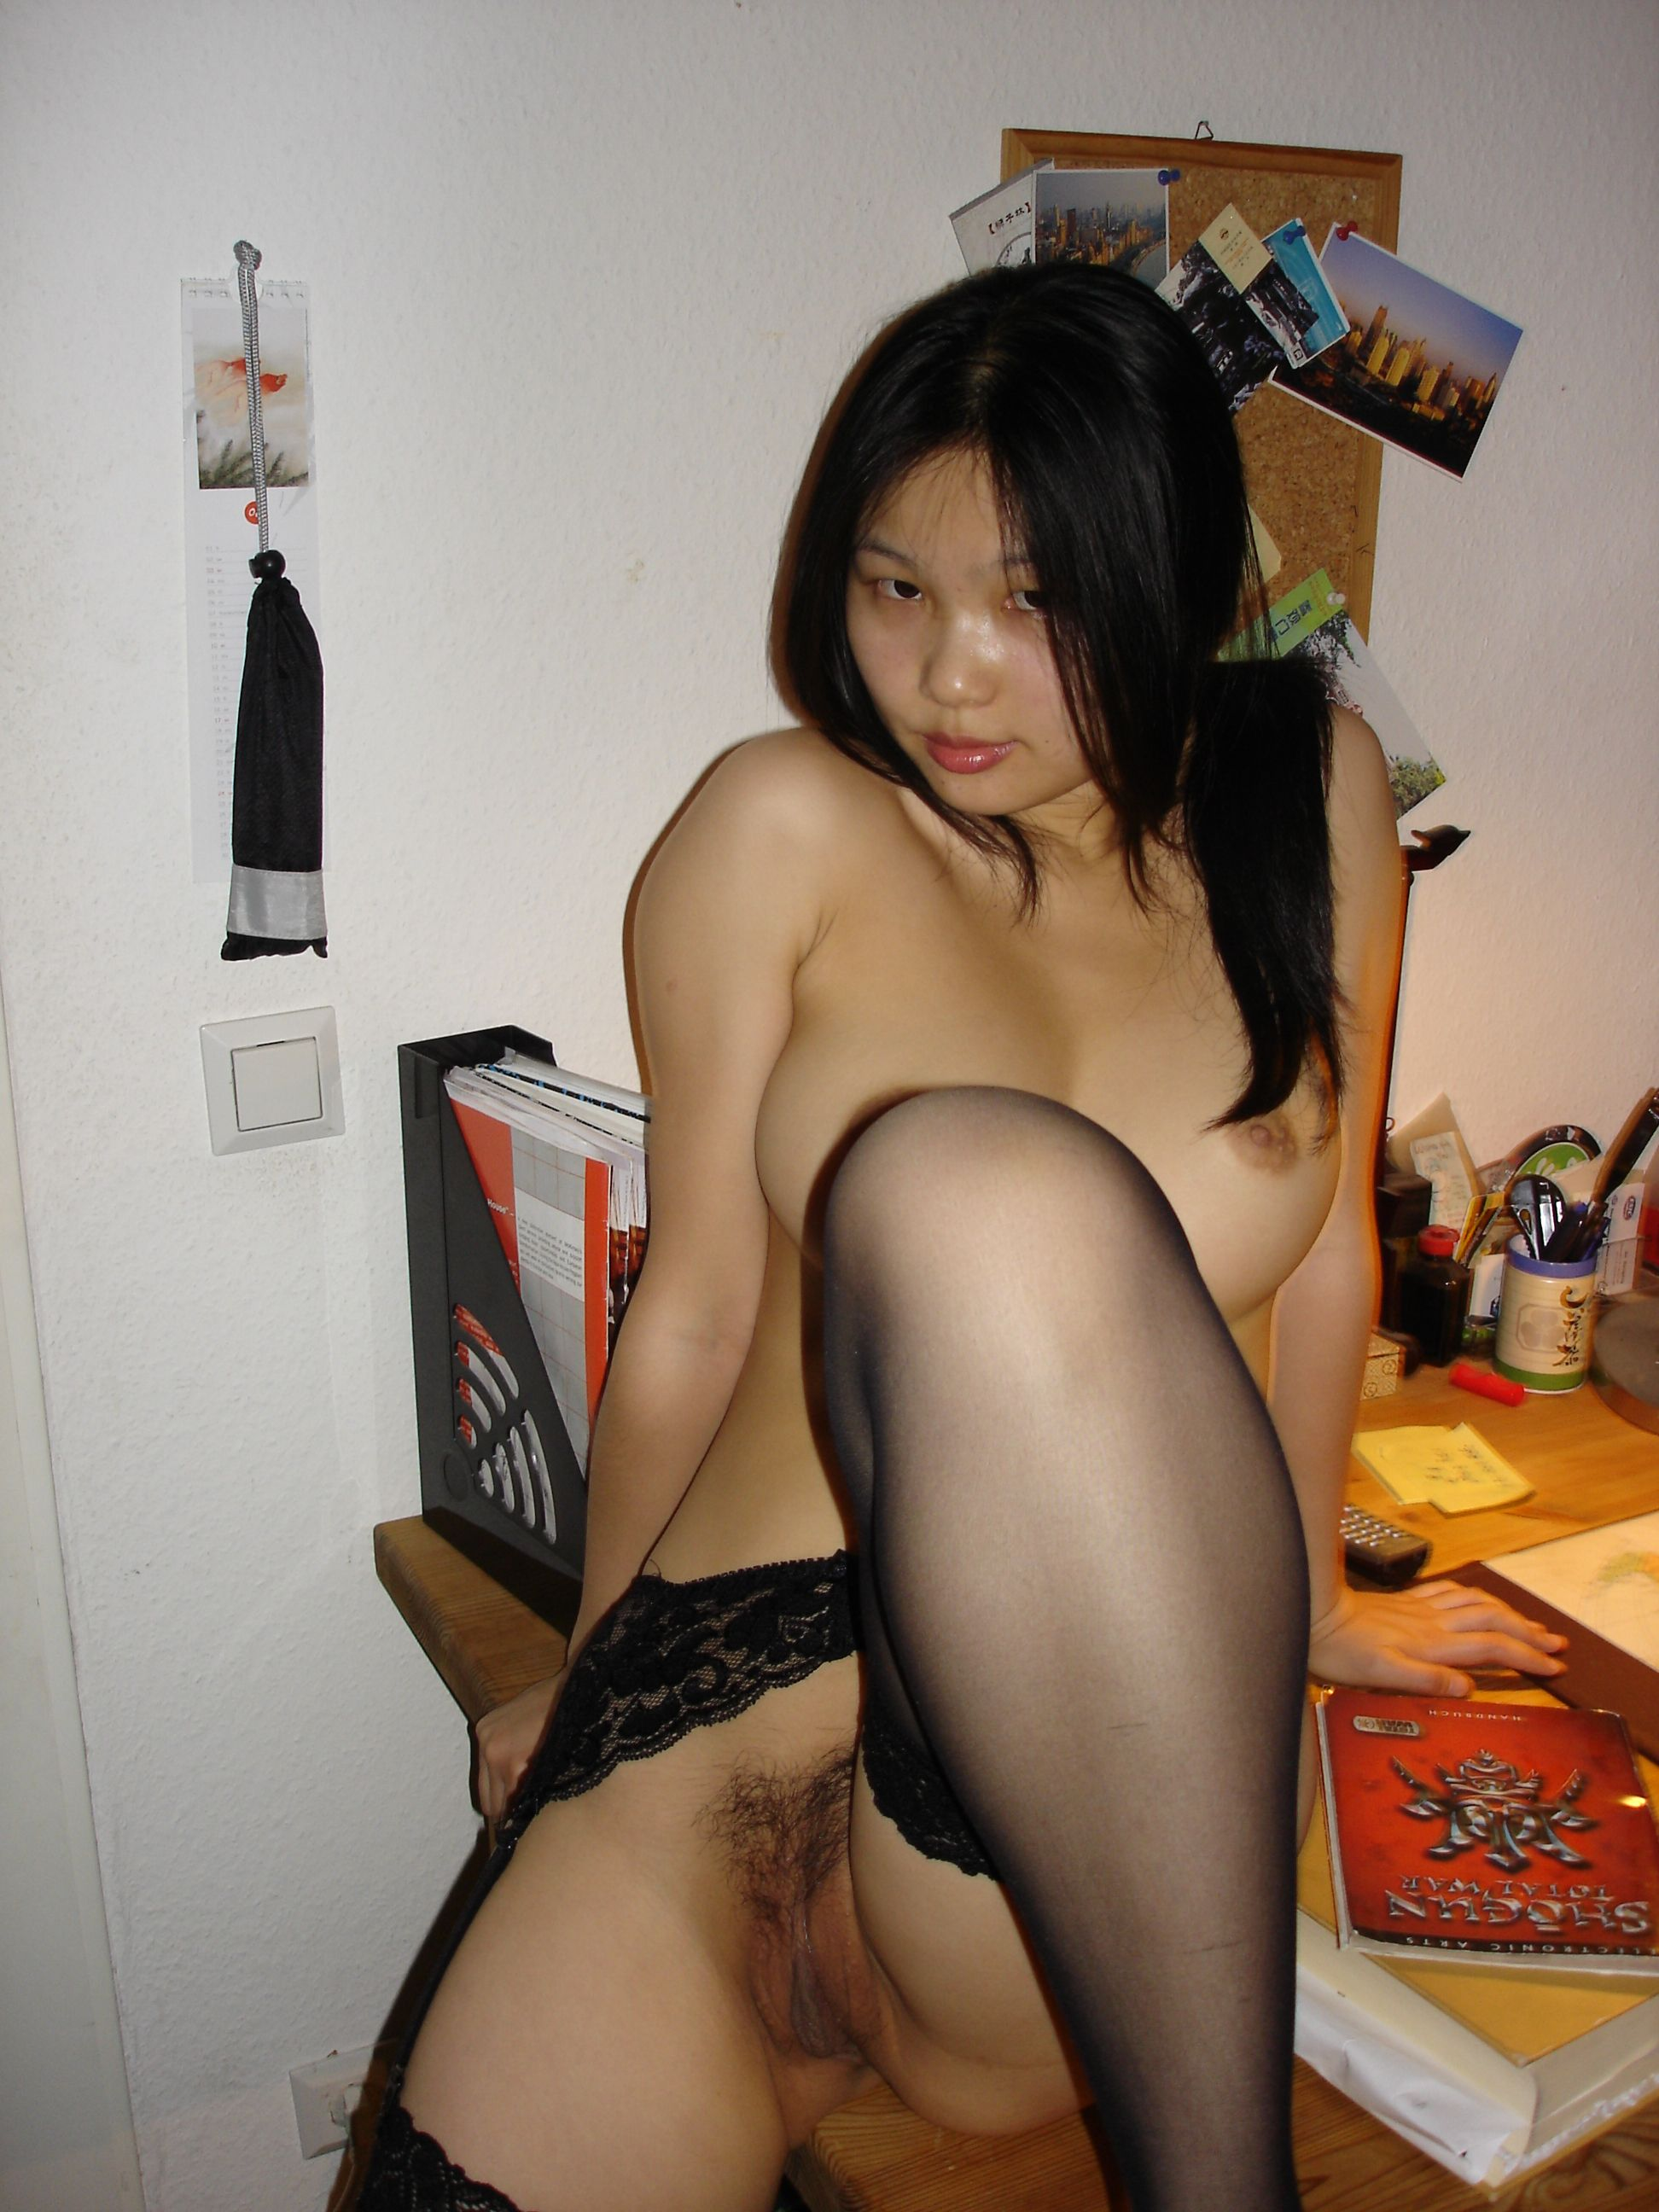 Petite asian amateur free her ripe breasts